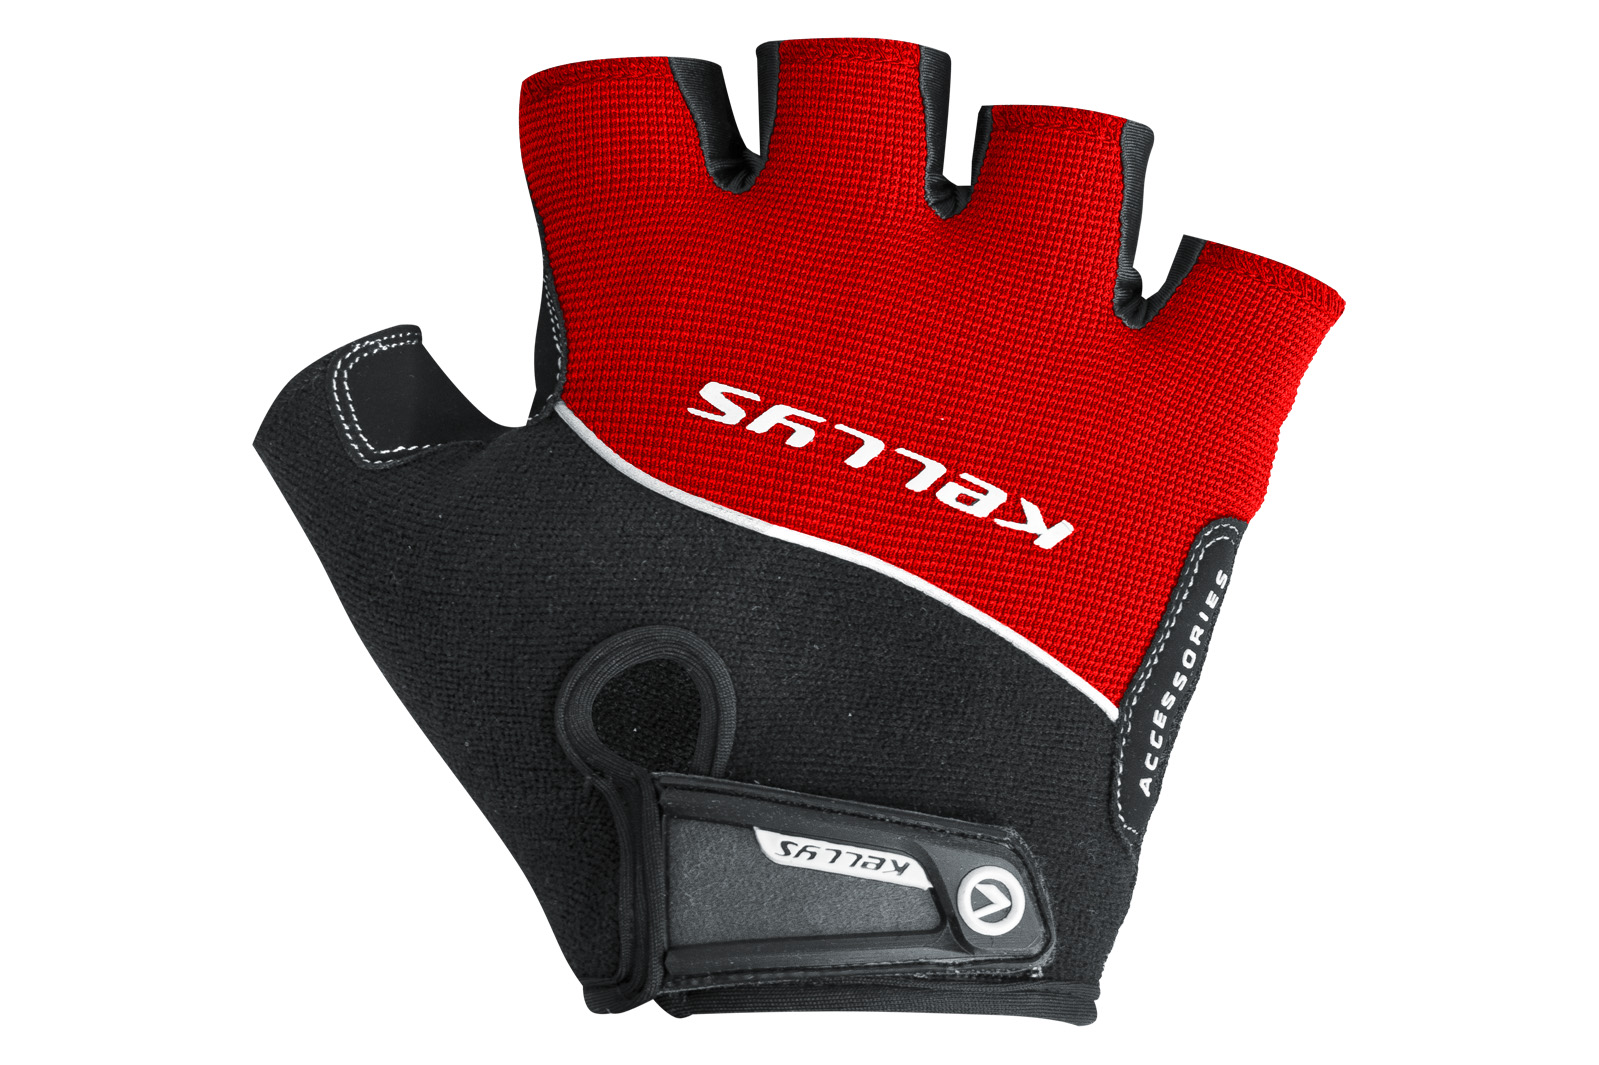 Handschuhe RACE red XL NEW - Mile-Multisport